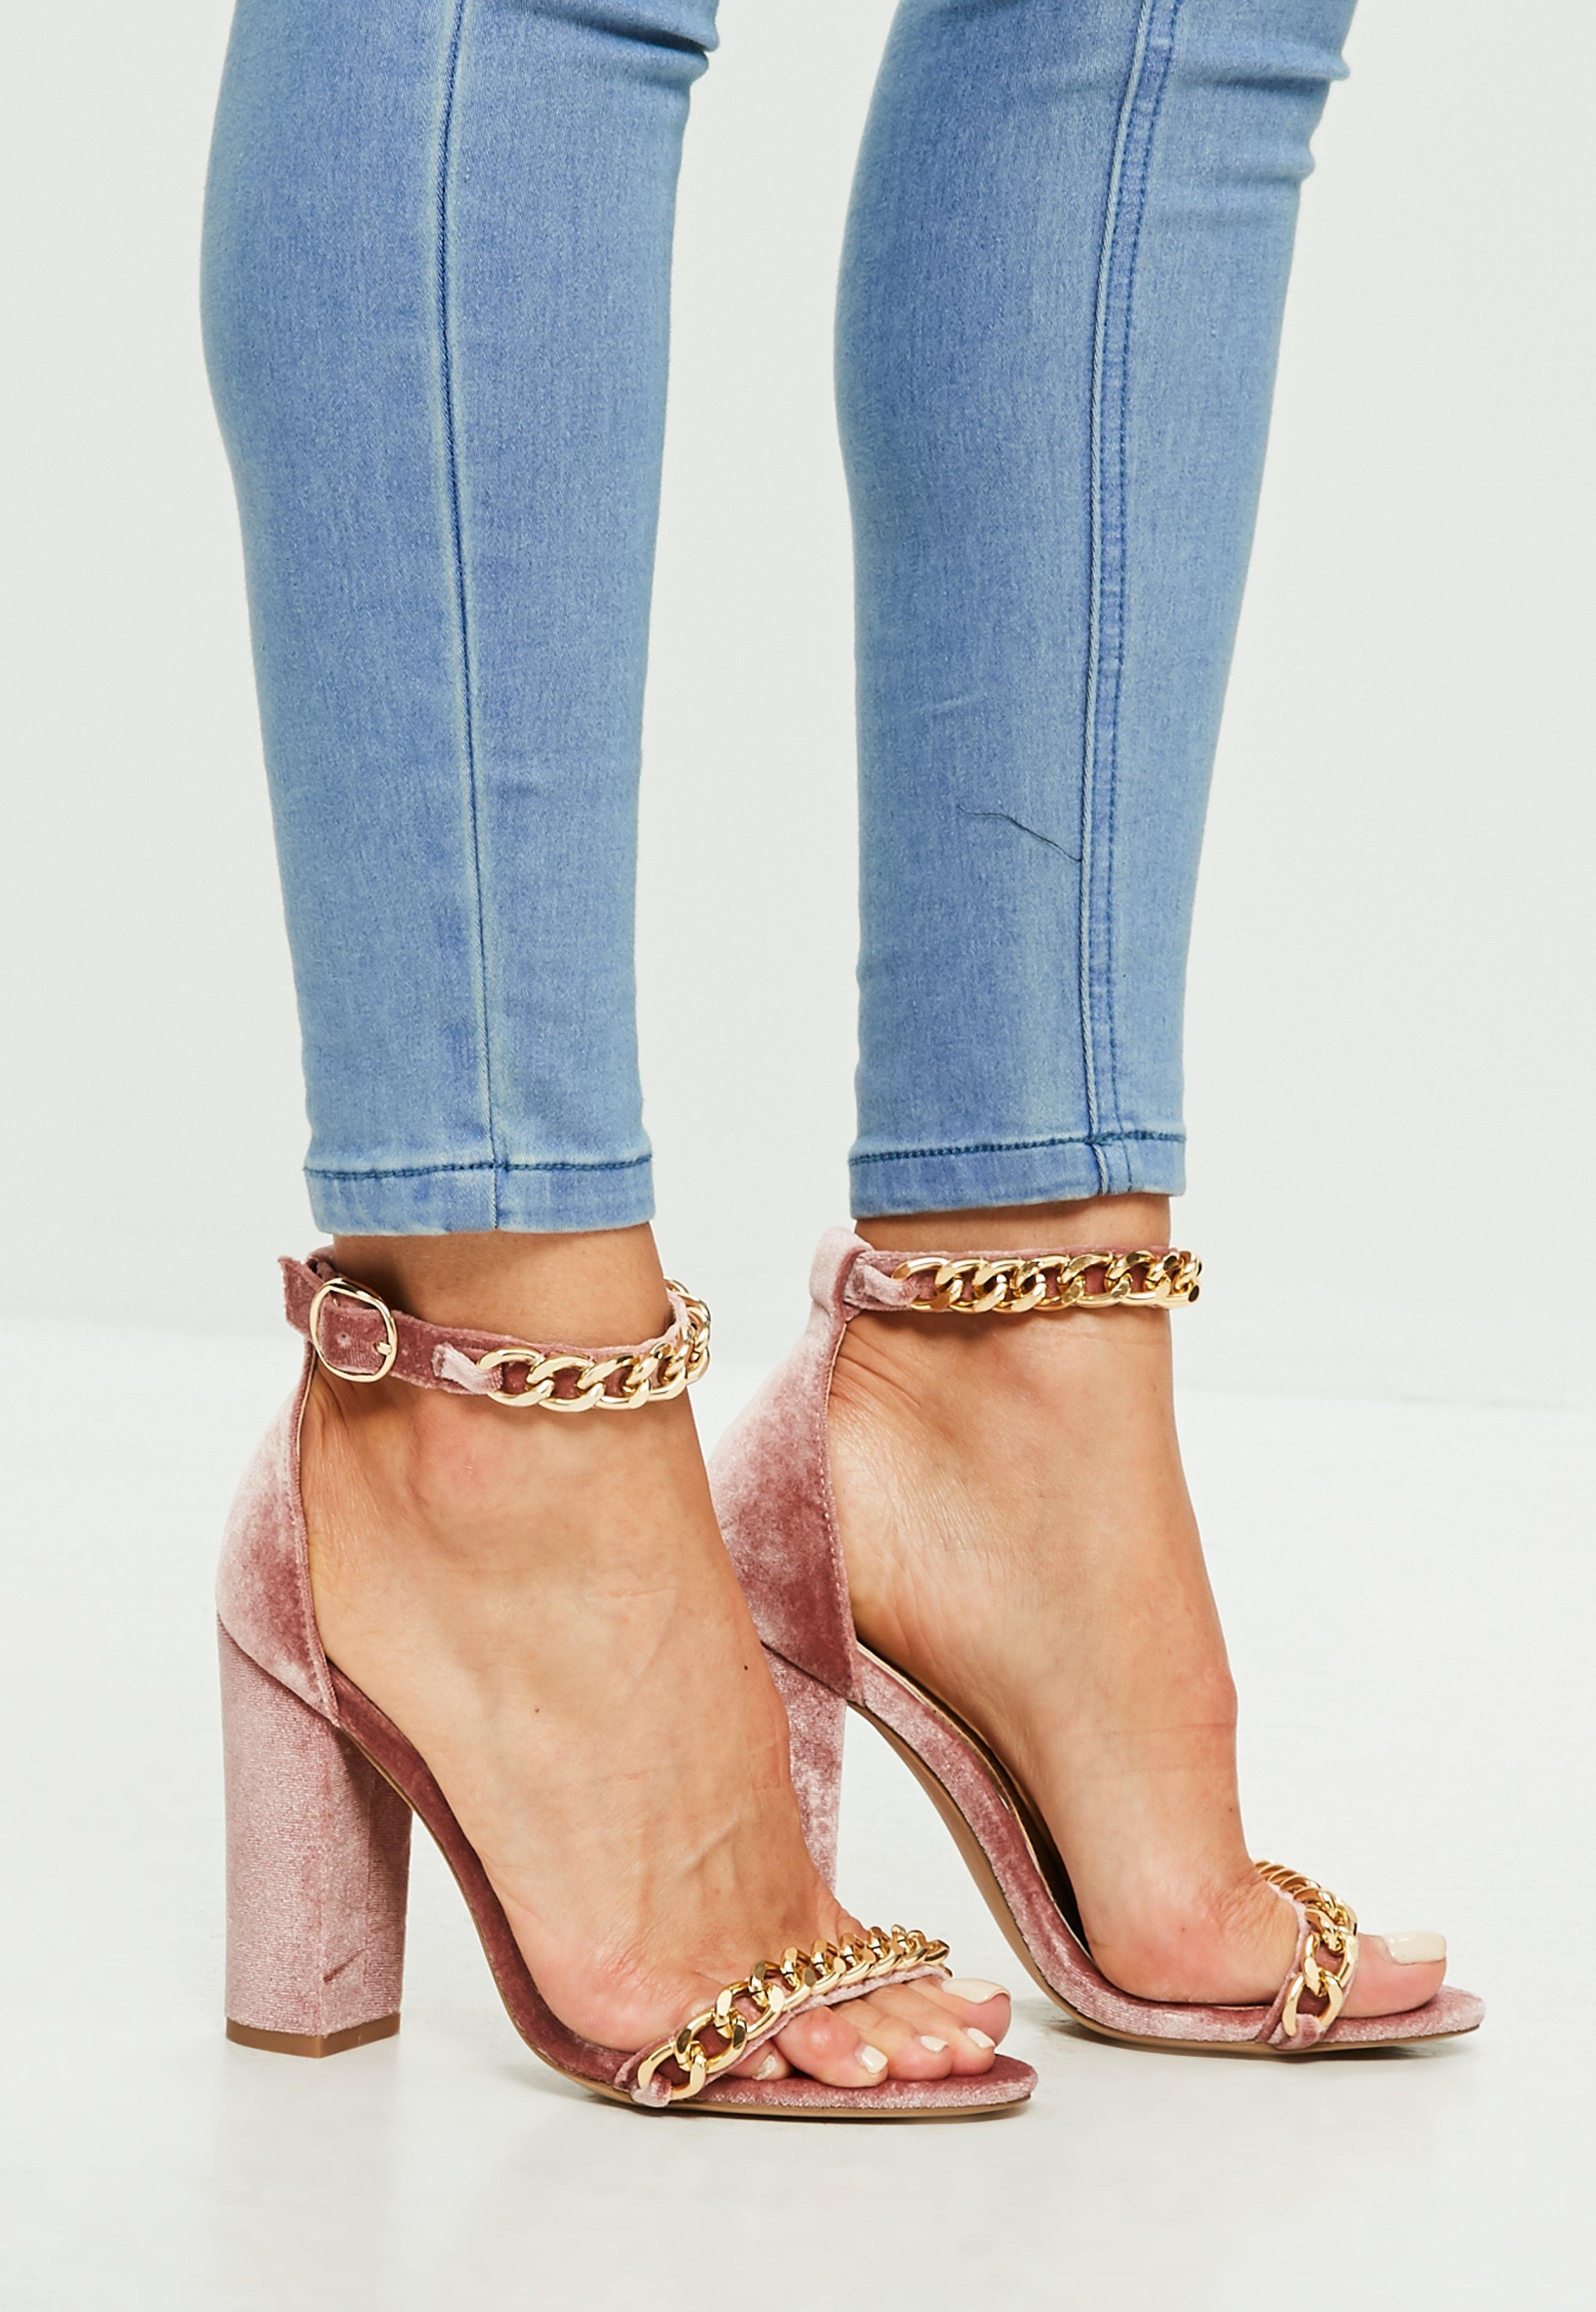 c56263d0bcf Lyst - Missguided Pink Chain Block Heeled Sandals in Pink